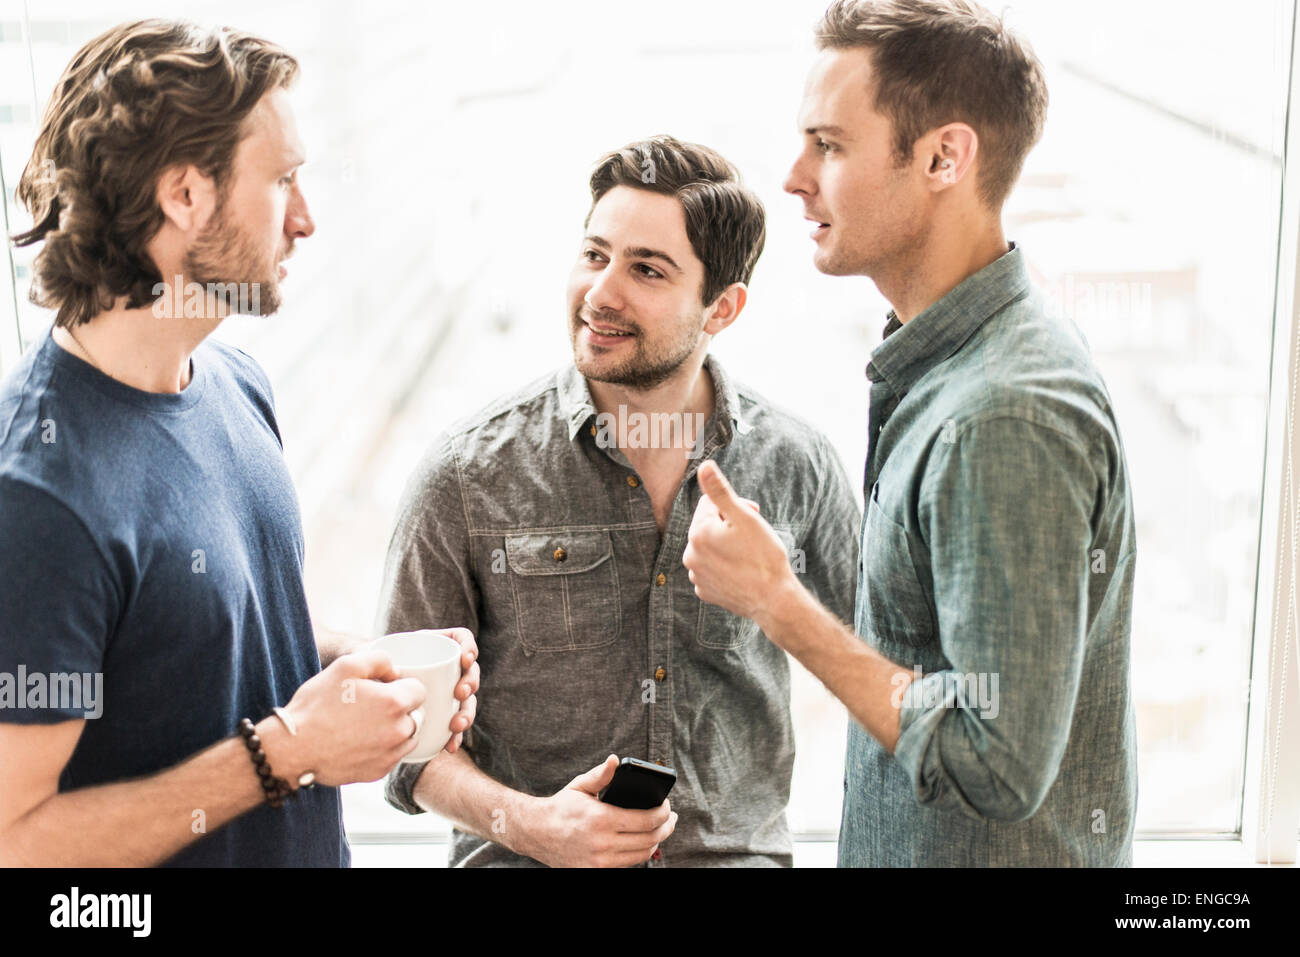 Three men standing talking, one with a cup of coffee, one with a smart phone. - Stock Image